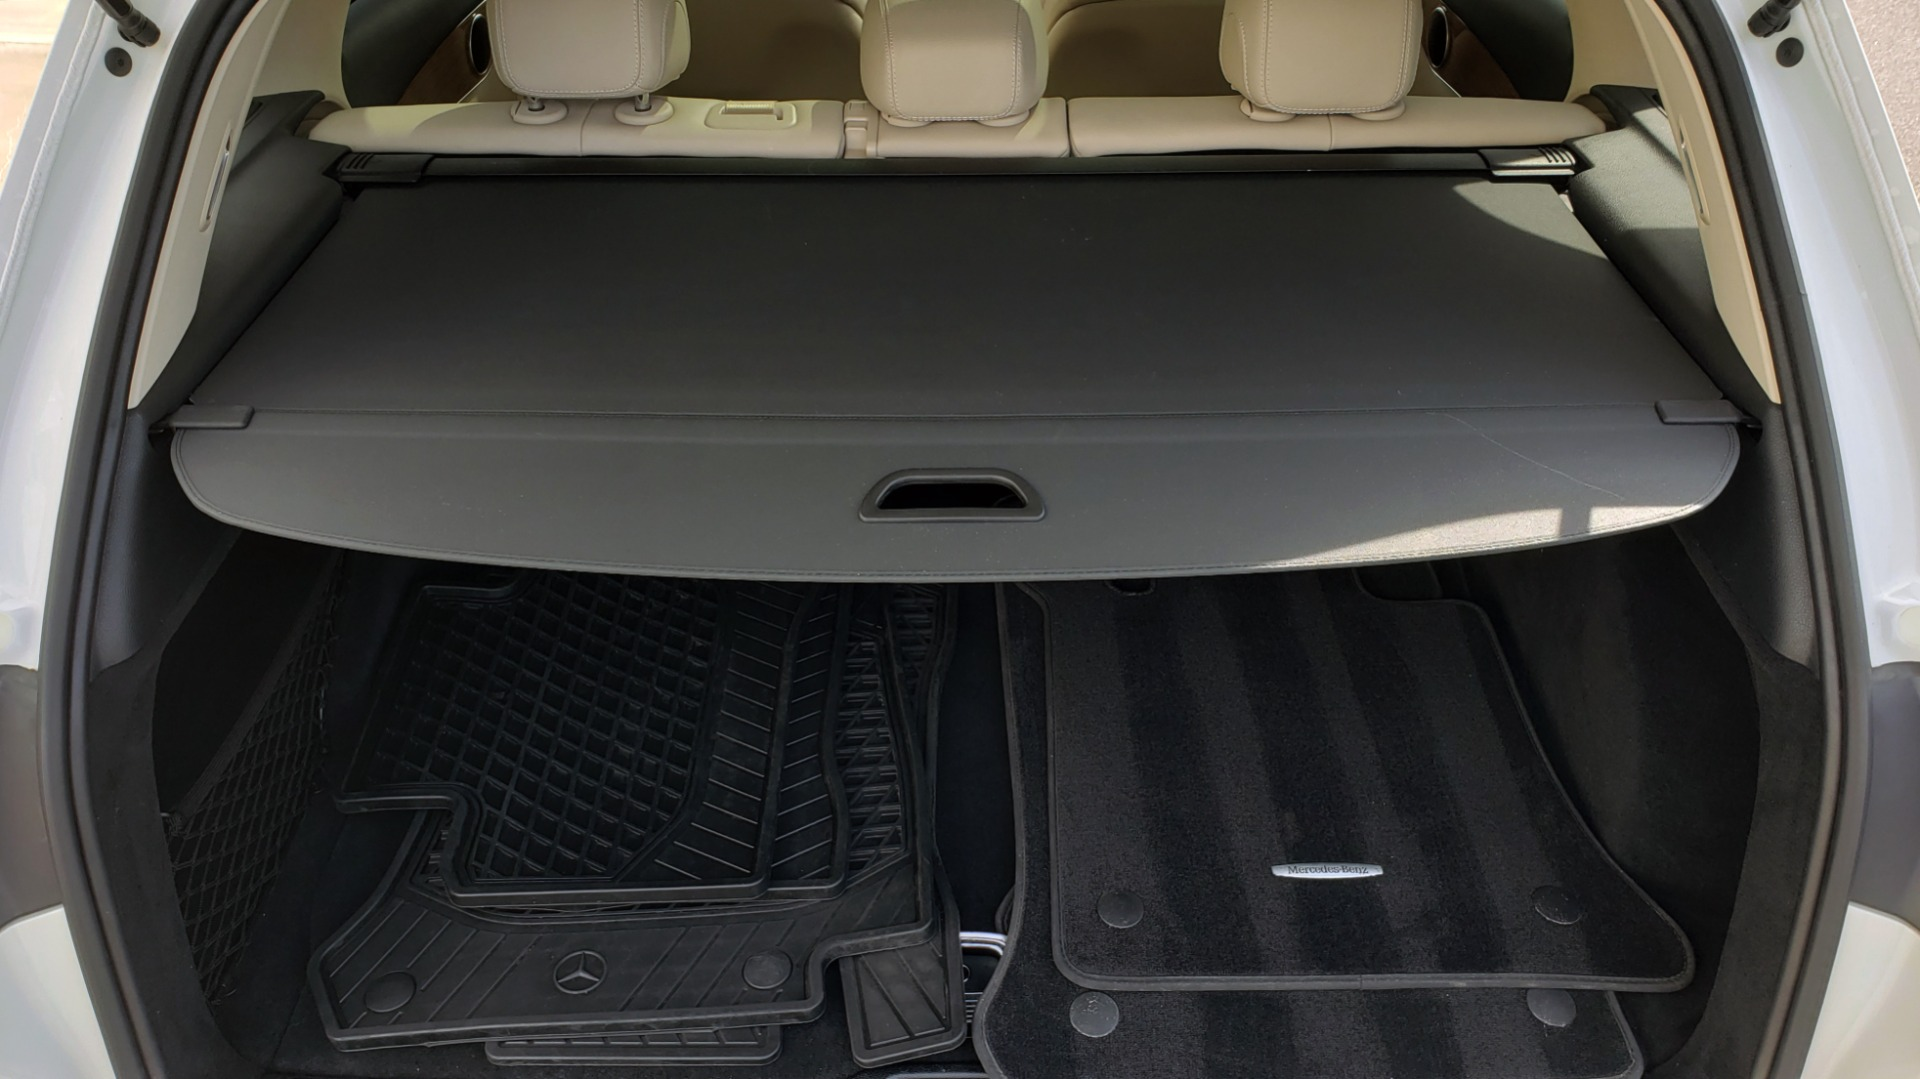 Used 2018 Mercedes-Benz GLC 300 4MATIC / PREM PKG / PANO-ROOF / APPLE / REARVIEW for sale $33,397 at Formula Imports in Charlotte NC 28227 20